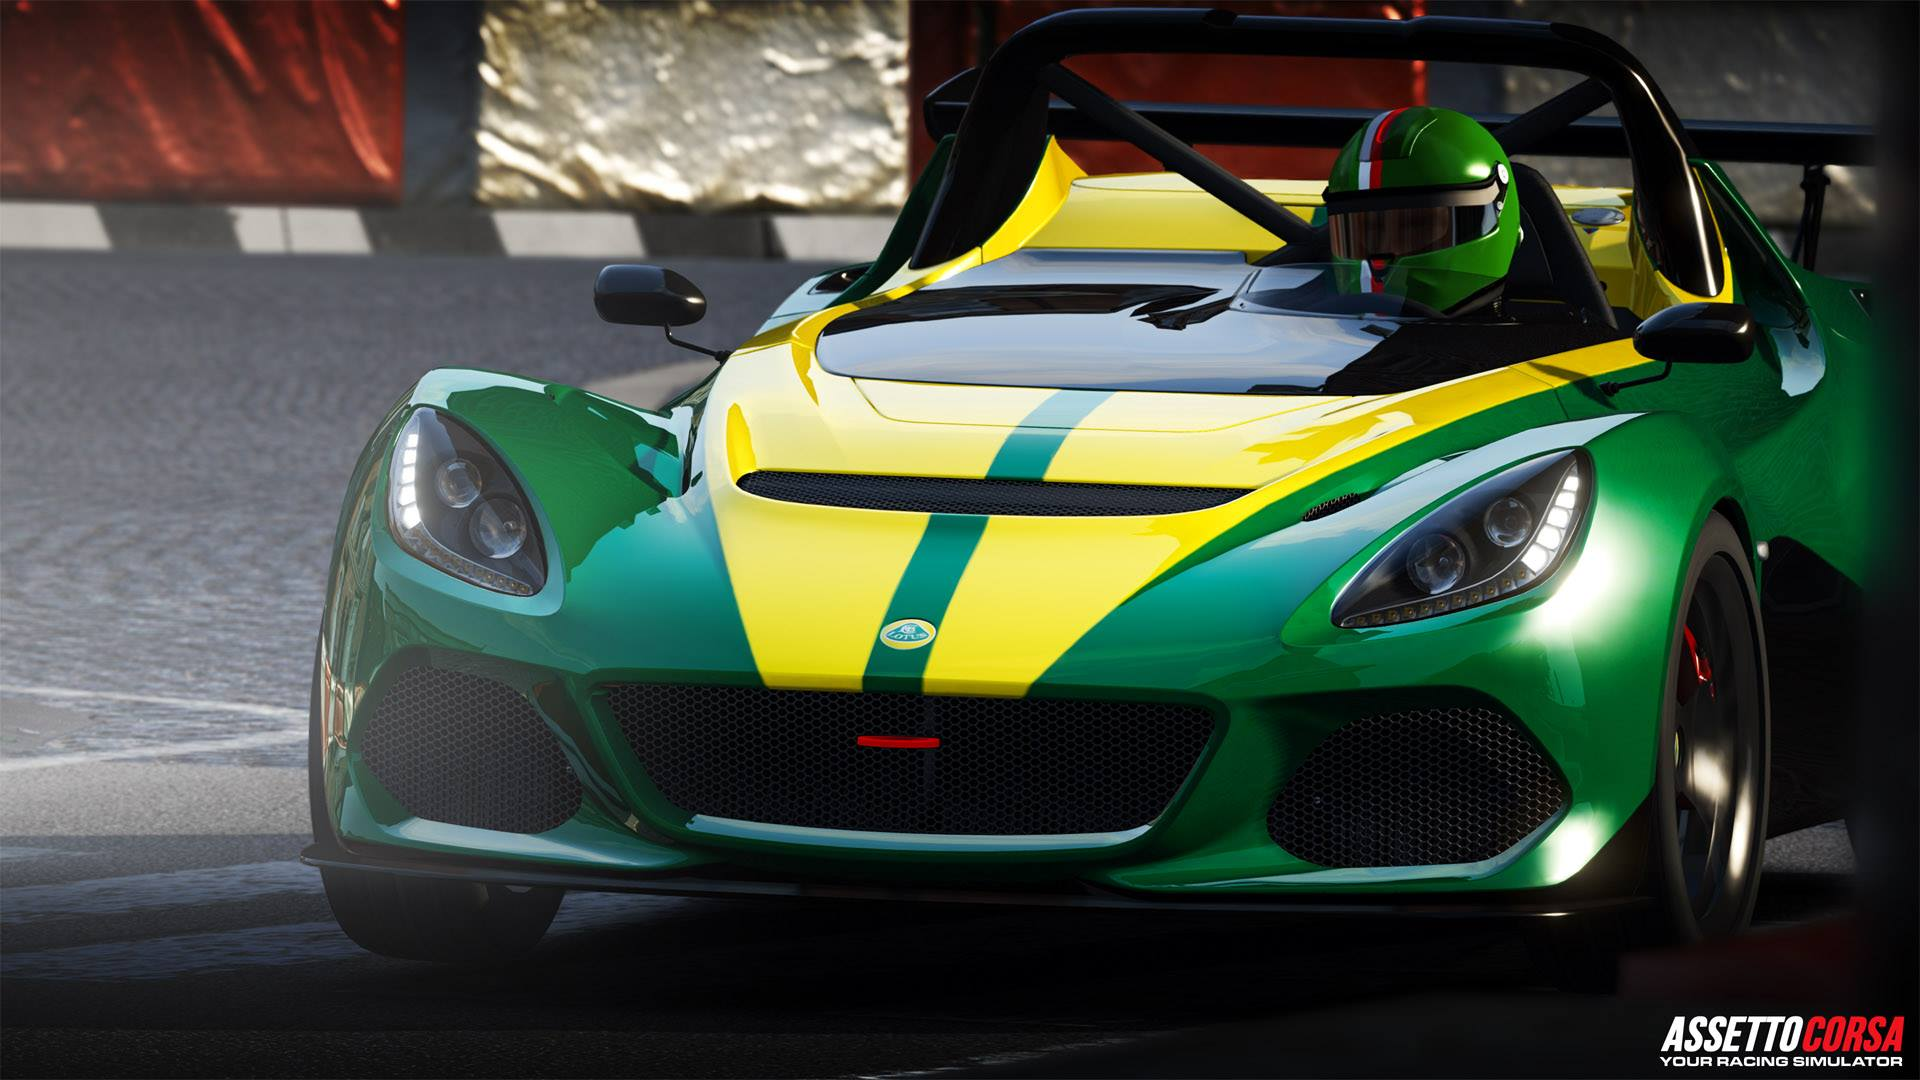 Assetto Corsa Ready To Race DLC Lotus 3-Eleven